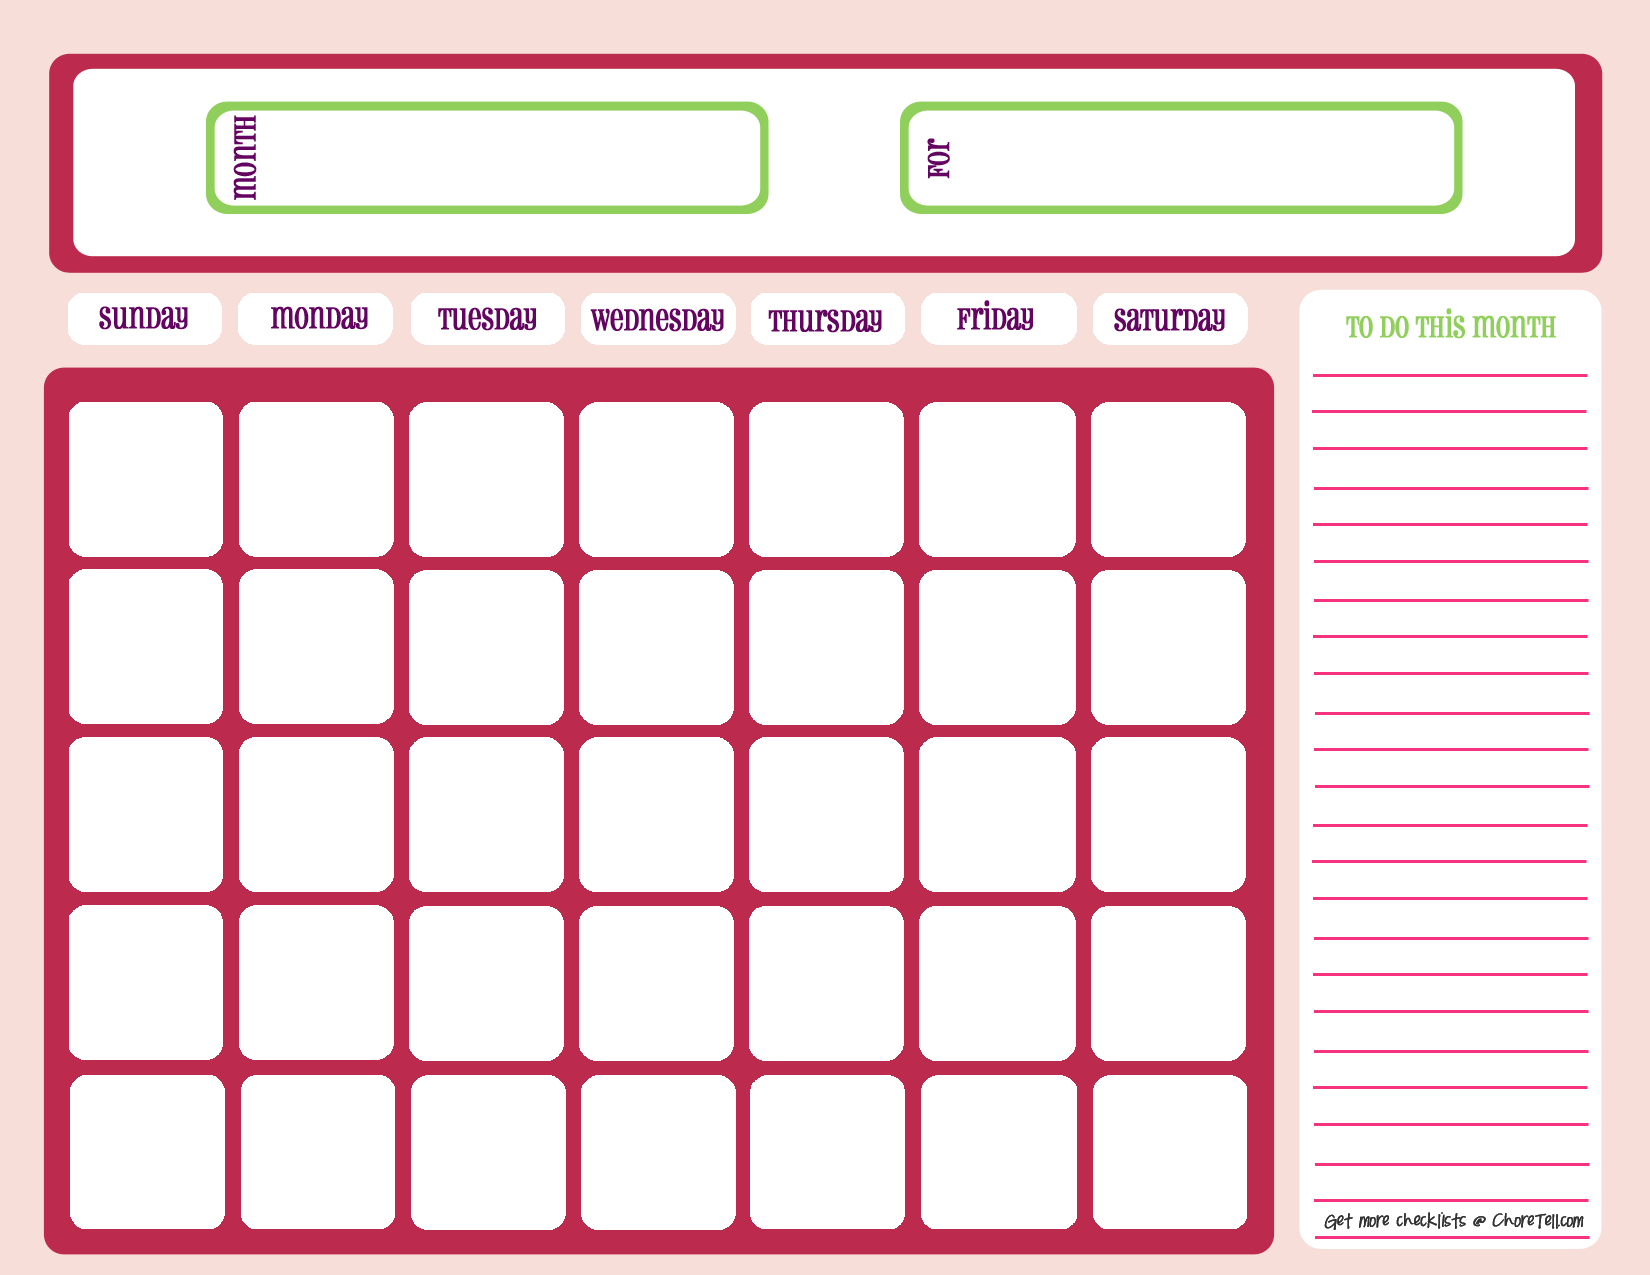 Blank Month Calendar - Pinks - Free Printable Downloads From - Free Printable Charts And Lists